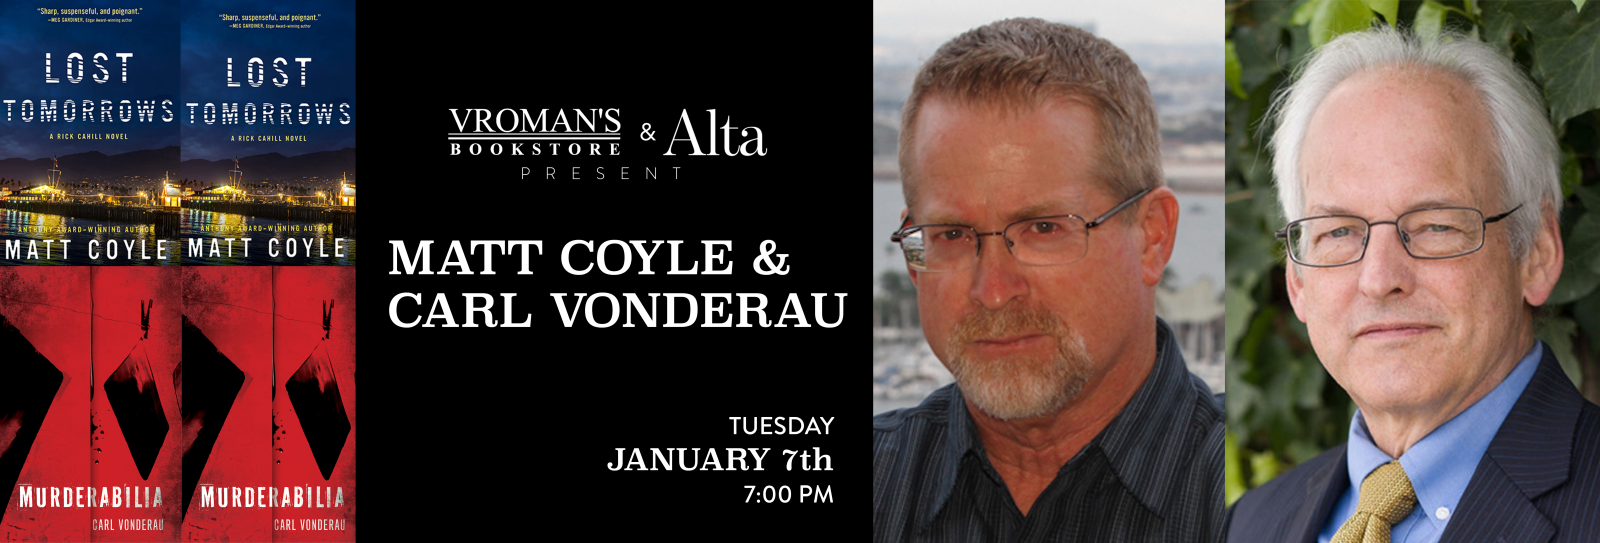 Matt Coyle and Carl Vonderau book signing January 7th at 7pm